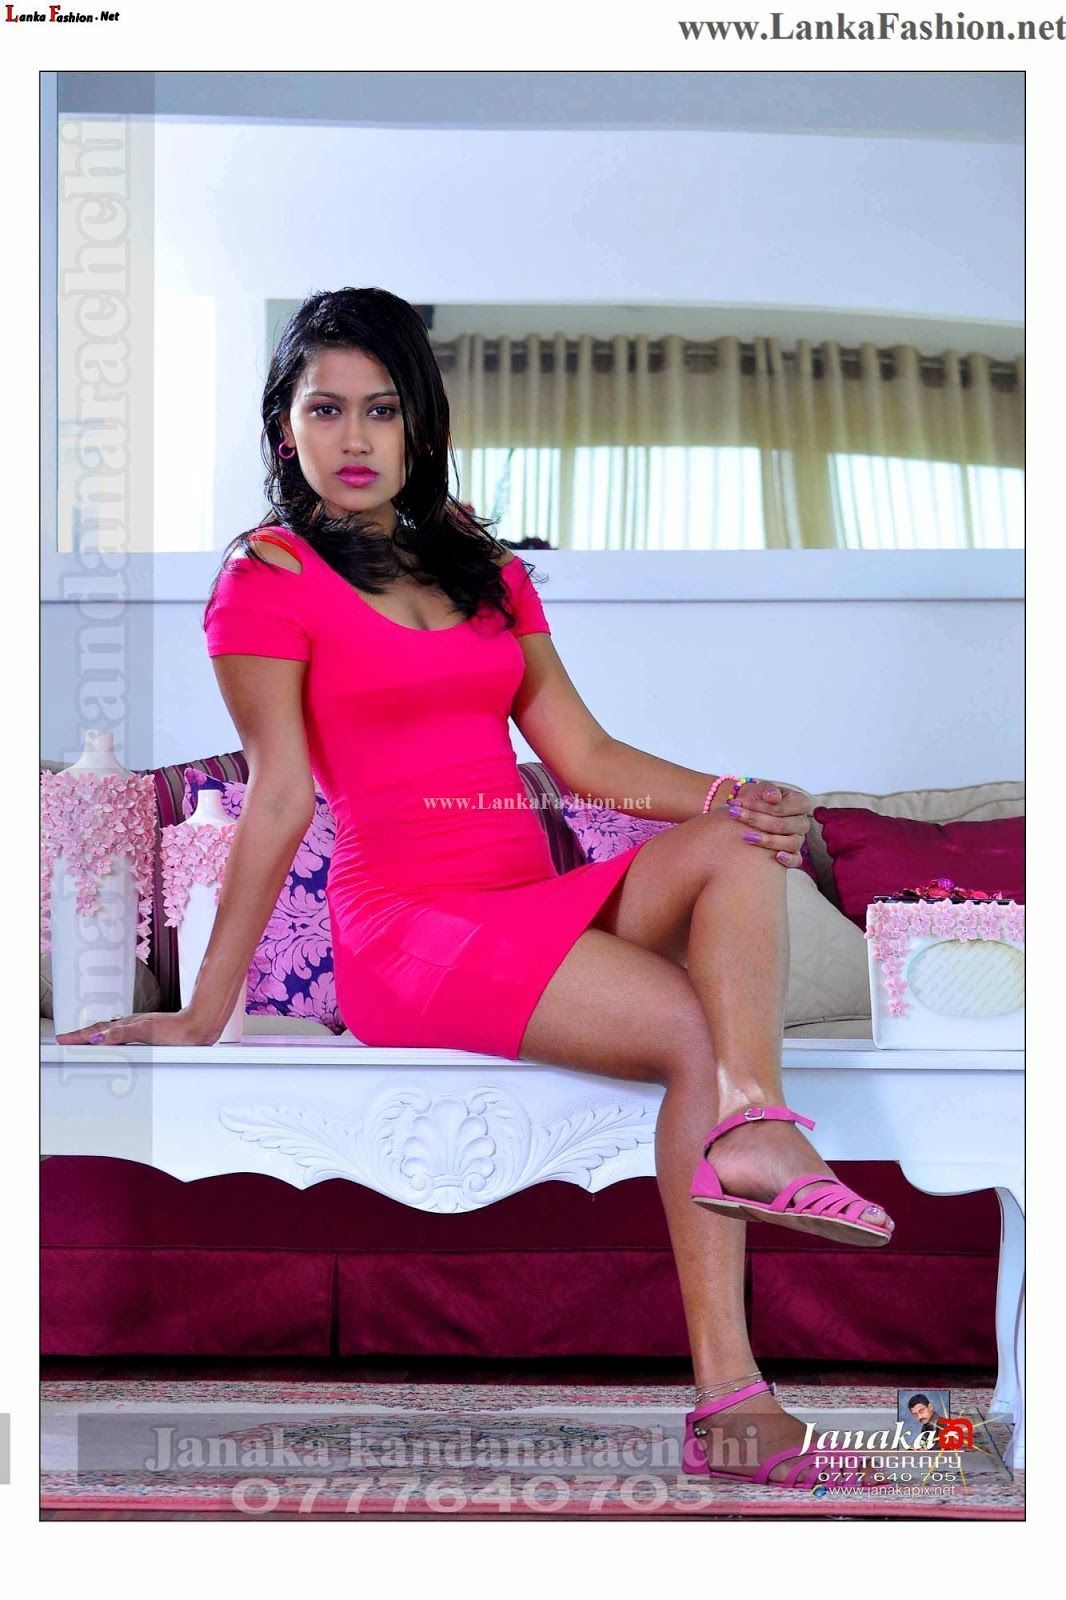 Chathu Paba Dilhara spicy legs